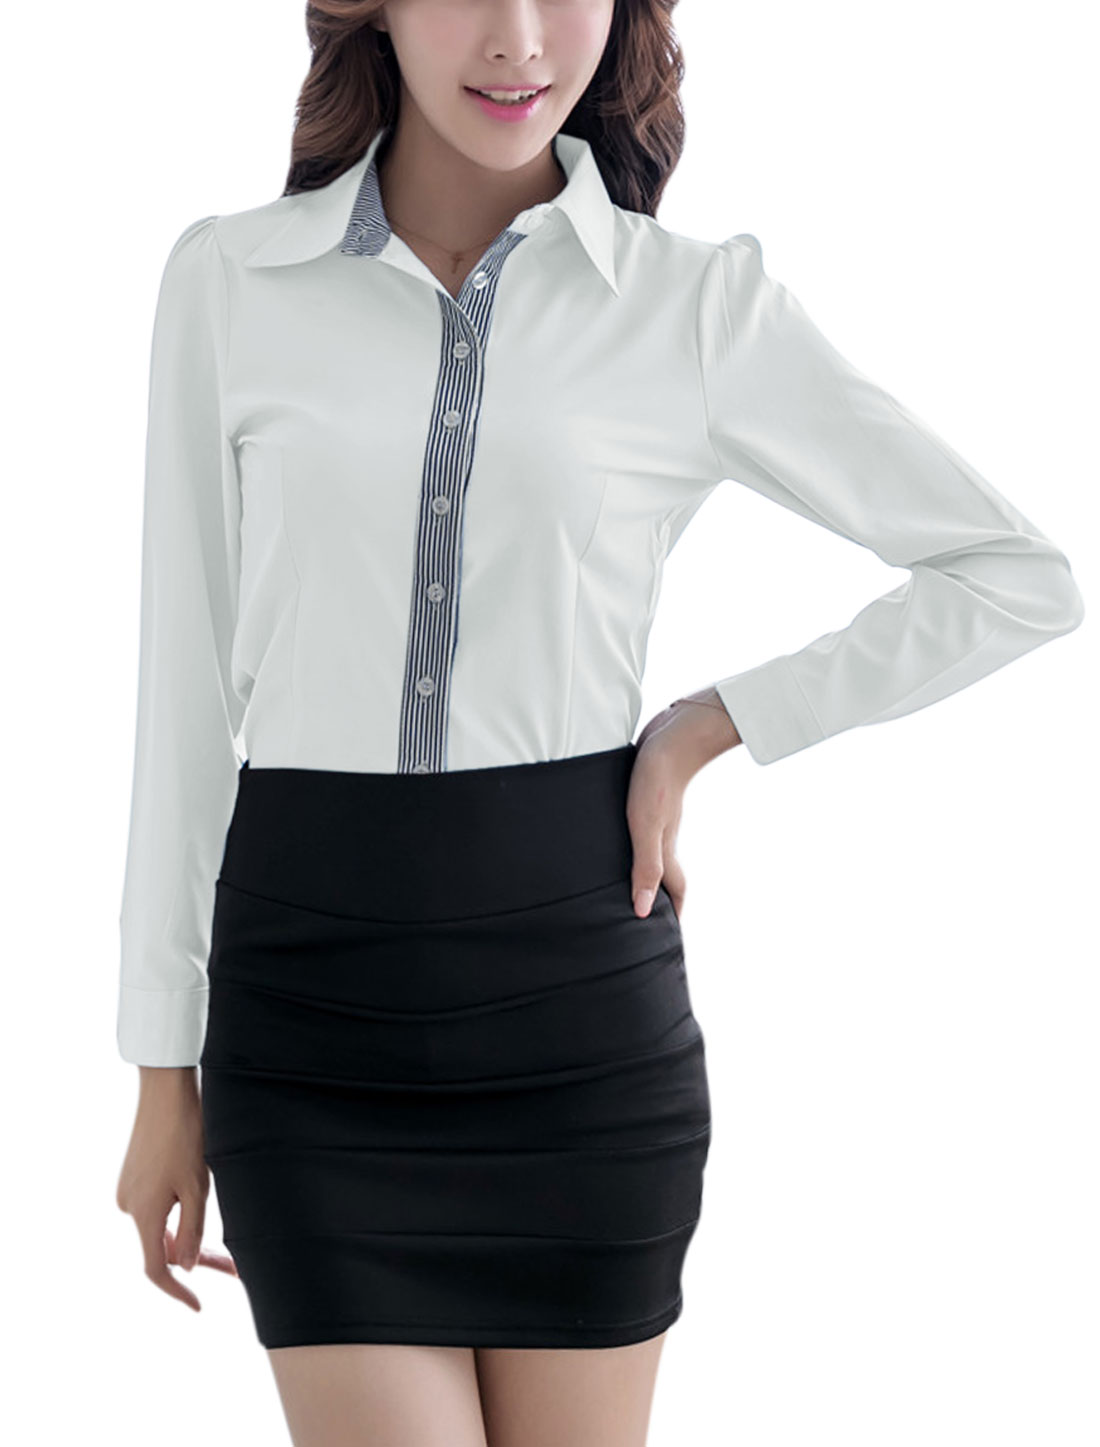 Lady Long Sleeve Point Collar Button Cuffs Casual Shirt White L